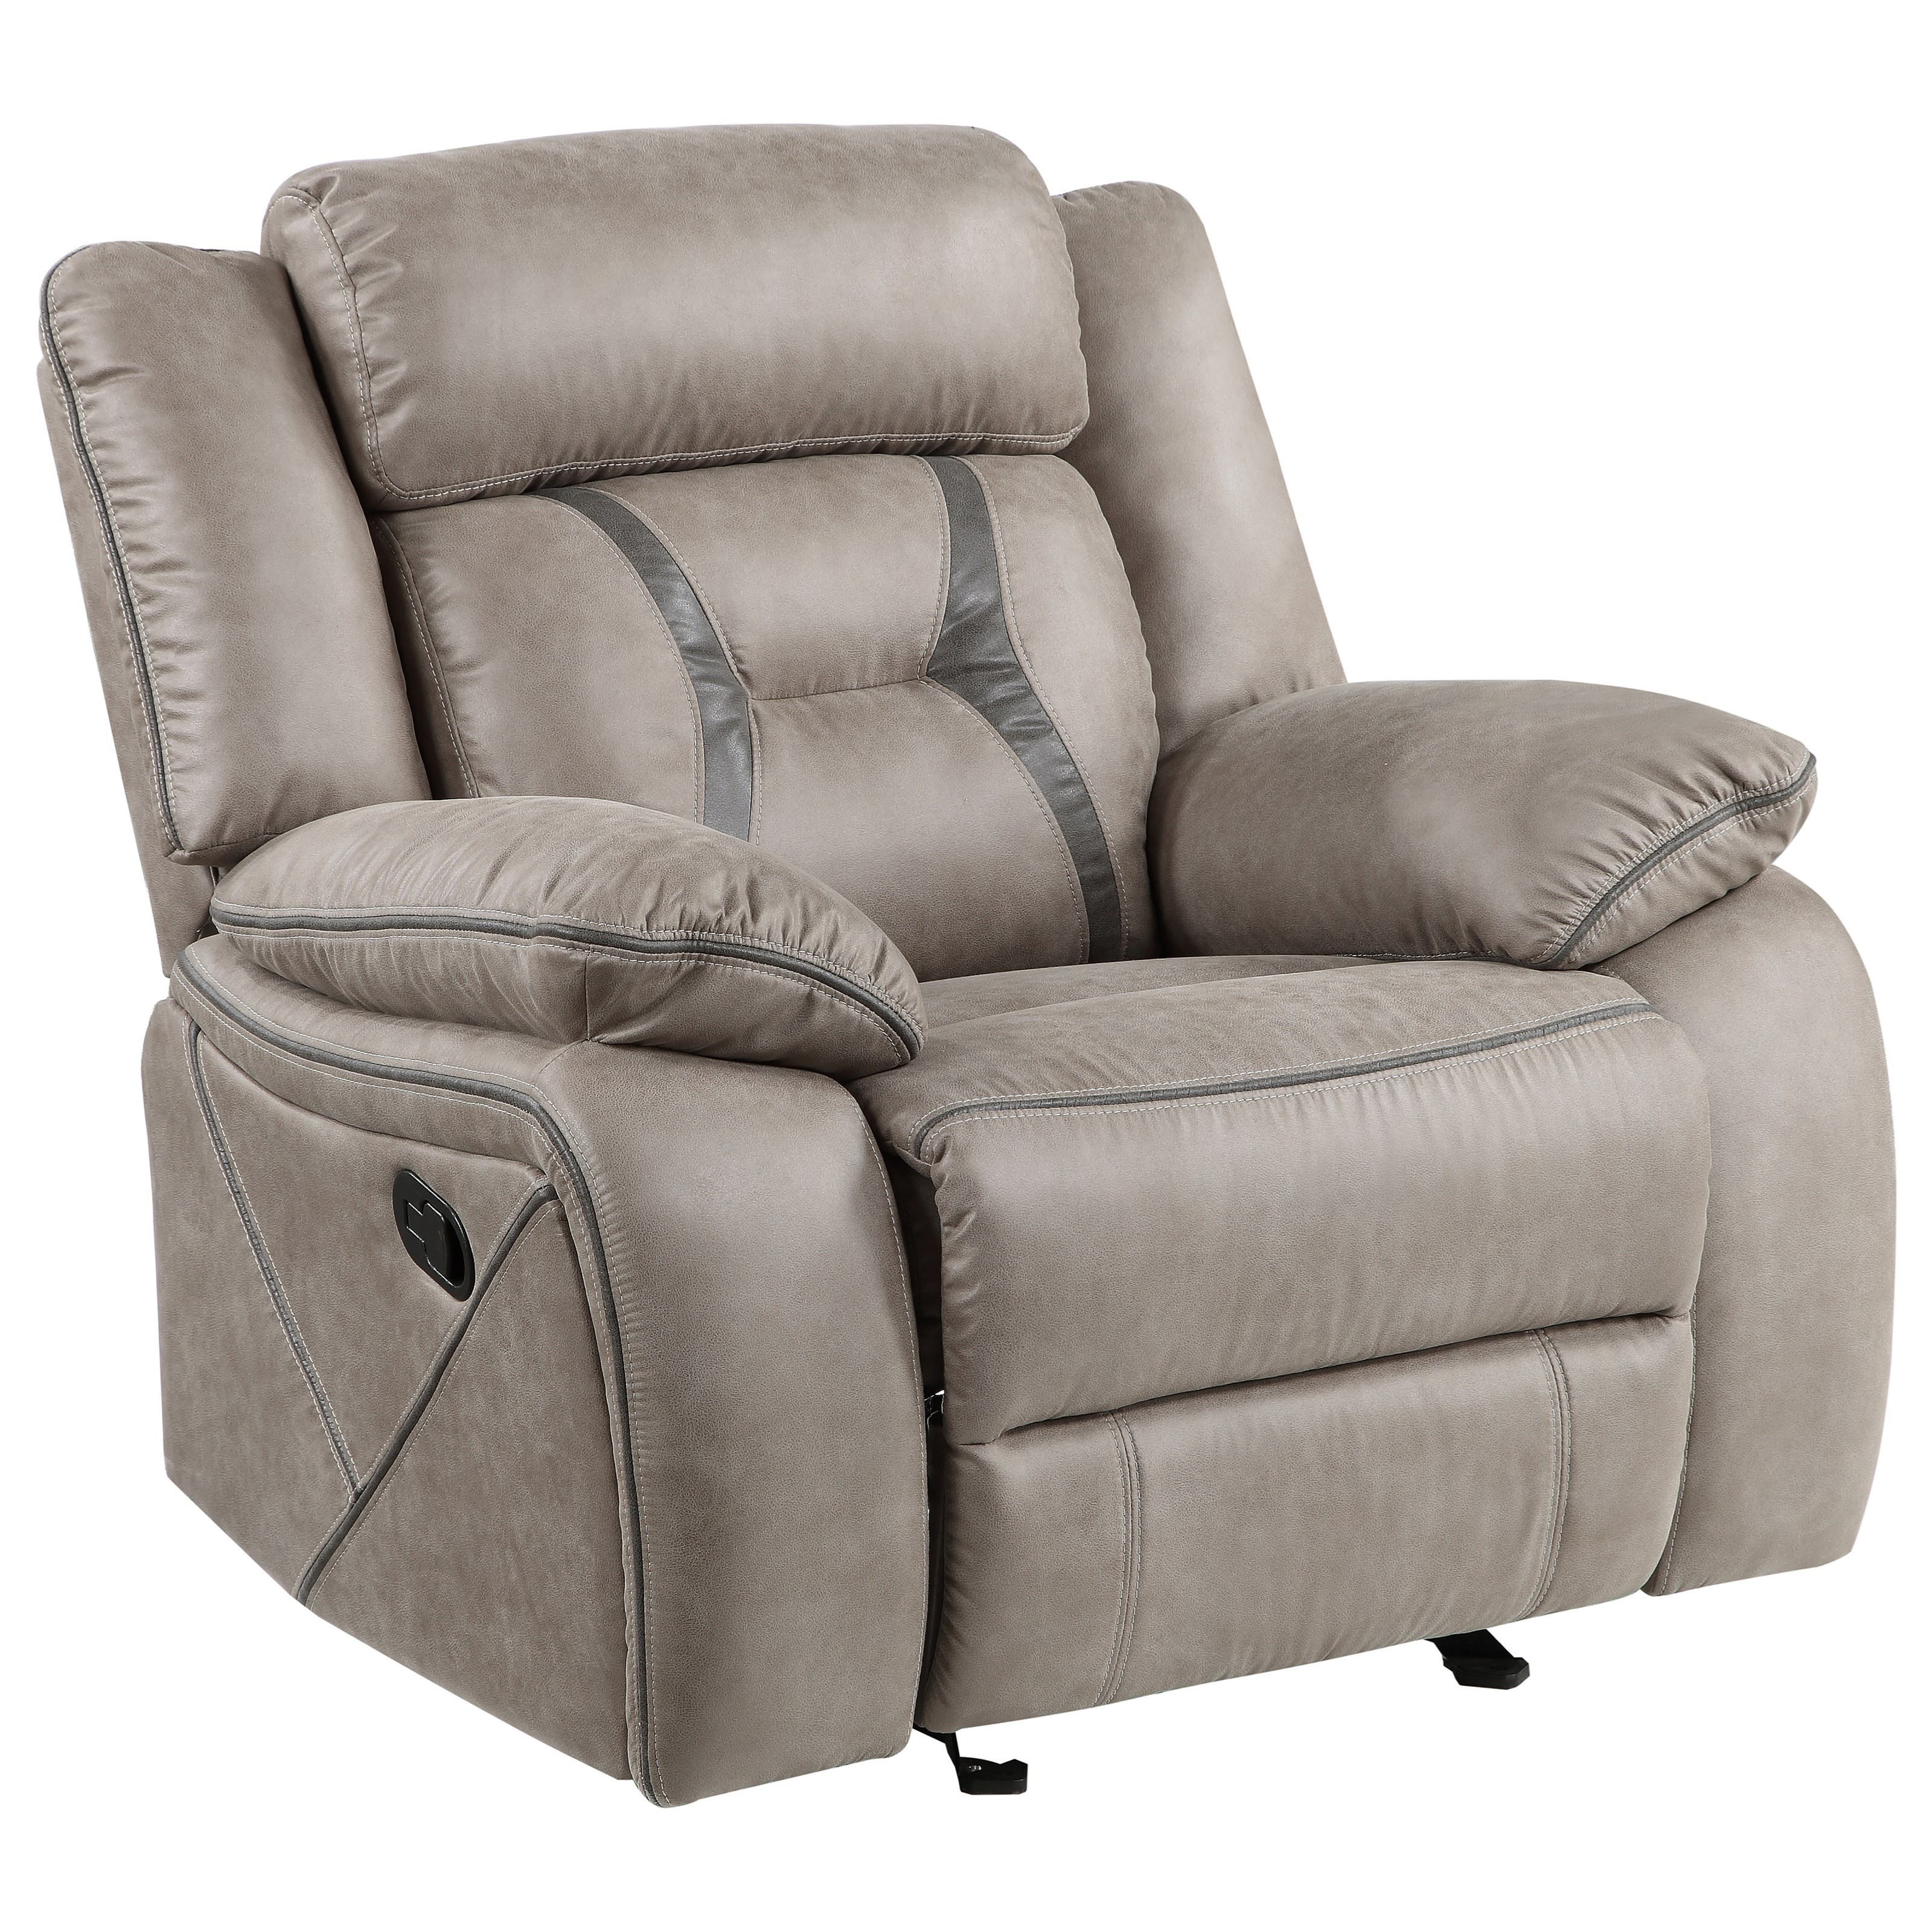 Tyson Manual Glider Recliner by Steve Silver at Northeast Factory Direct